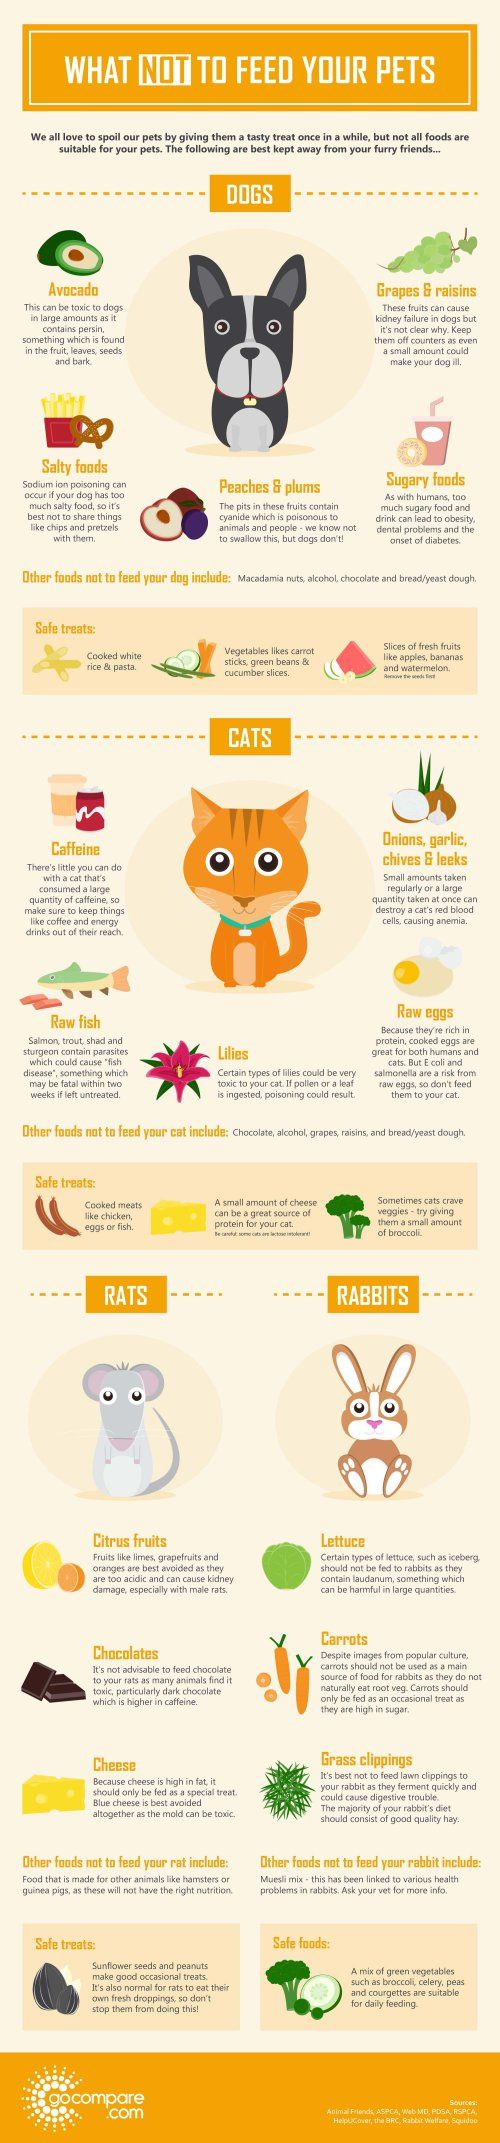 Infographic – What not to feed your pets